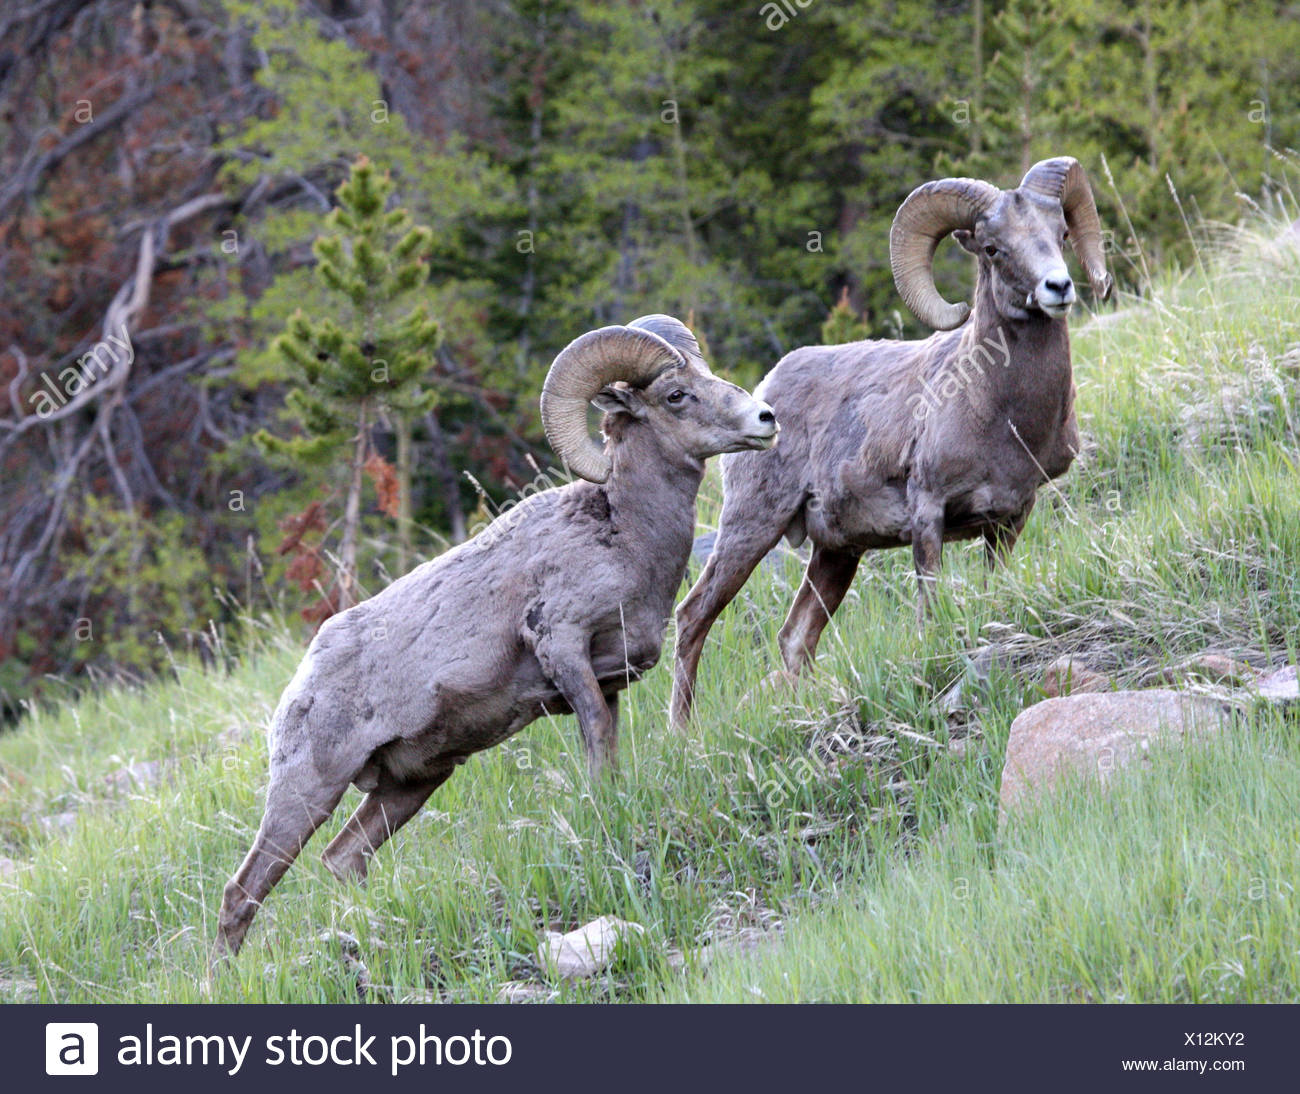 Ram Billy Goat Rams High Resolution Stock Photography And Images Alamy